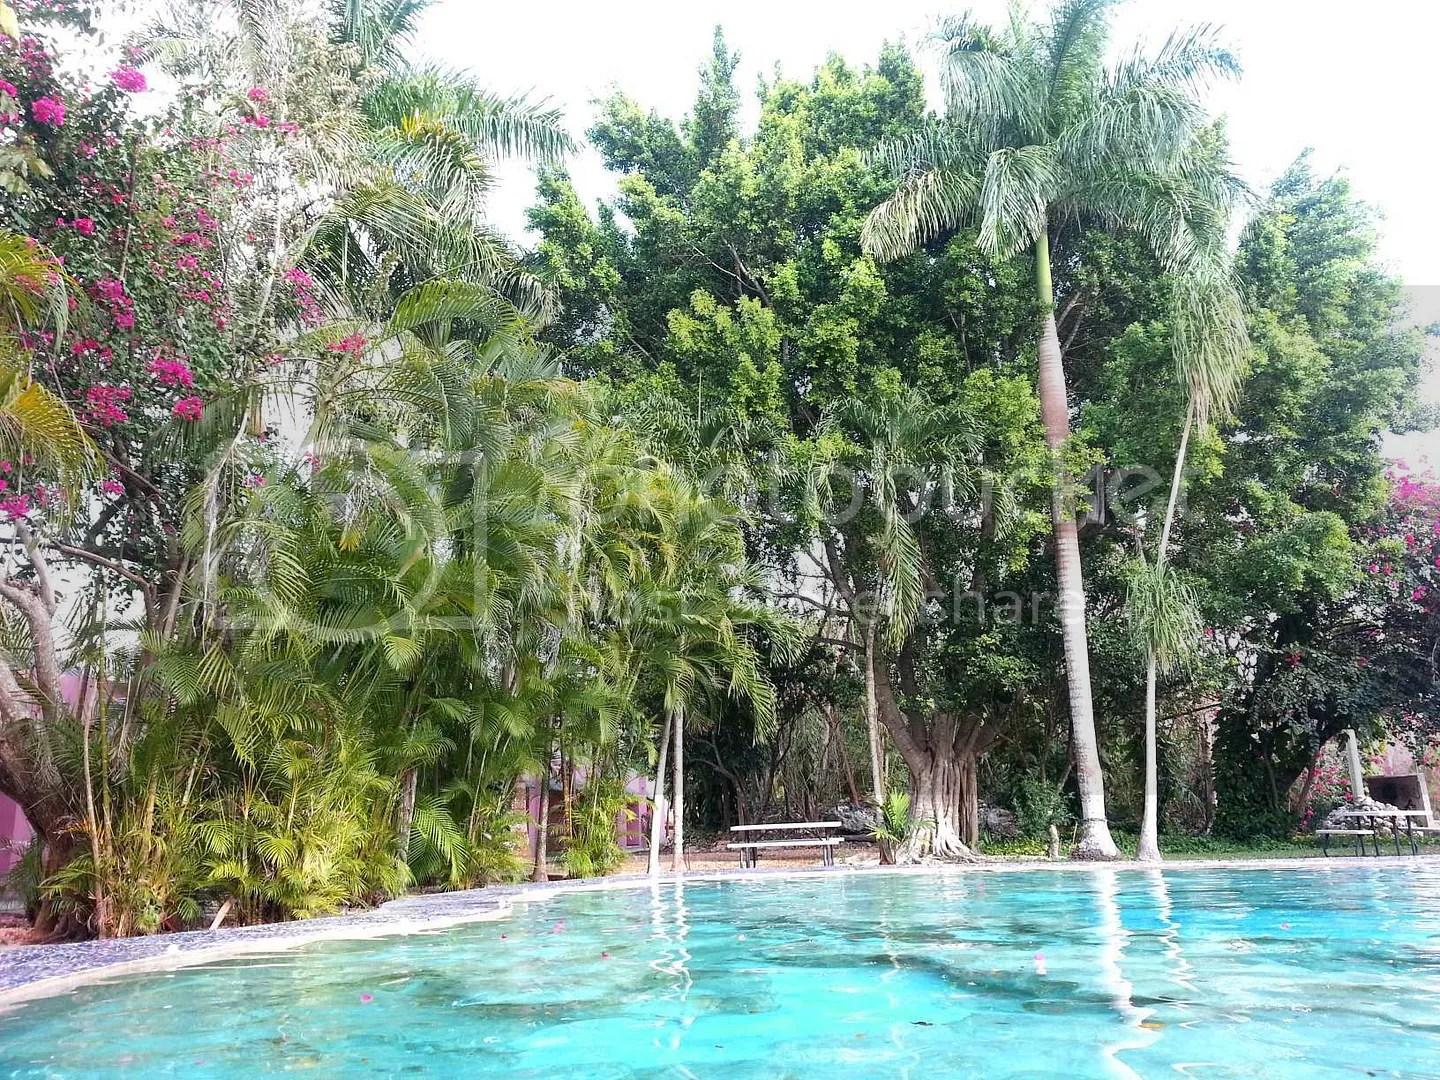 Hotel Pool Trees and landscaping beautiful